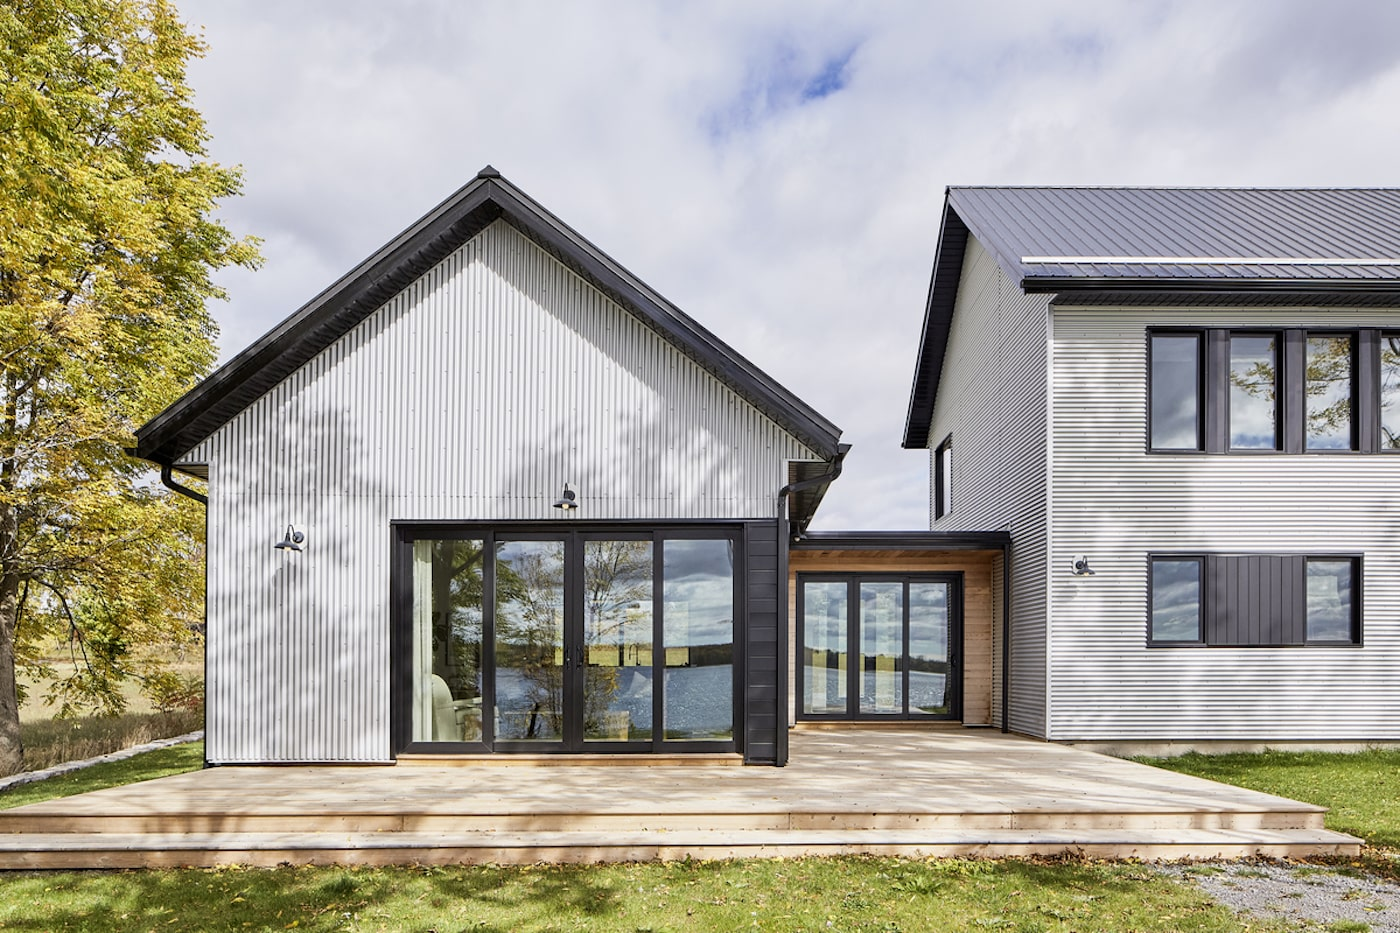 Metal clad sustainable home